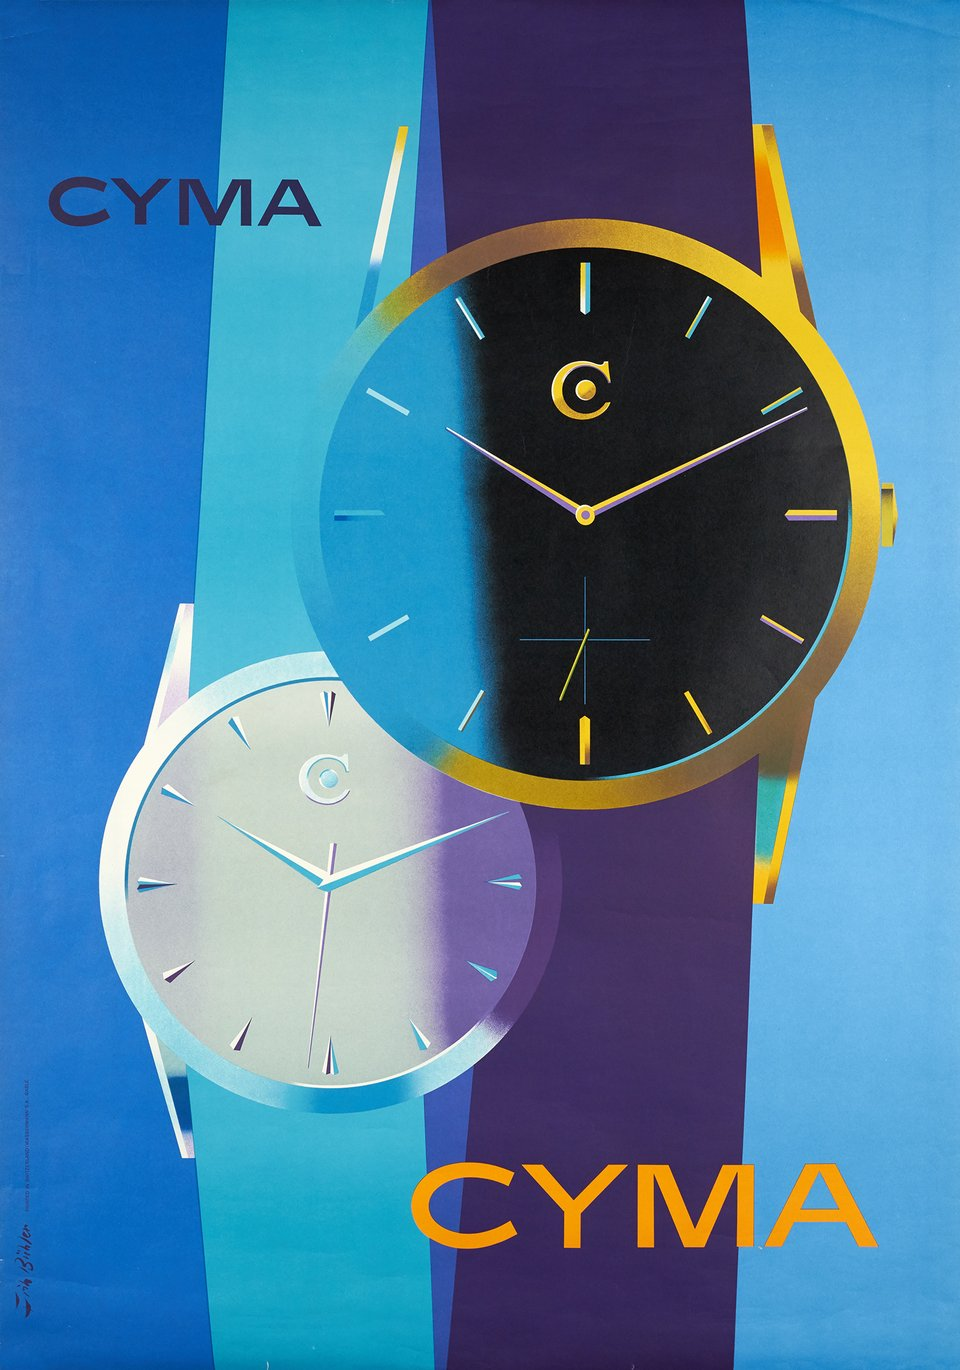 Cyma, Swiss watches – Affiche ancienne – Fritz BUHLER – 1958